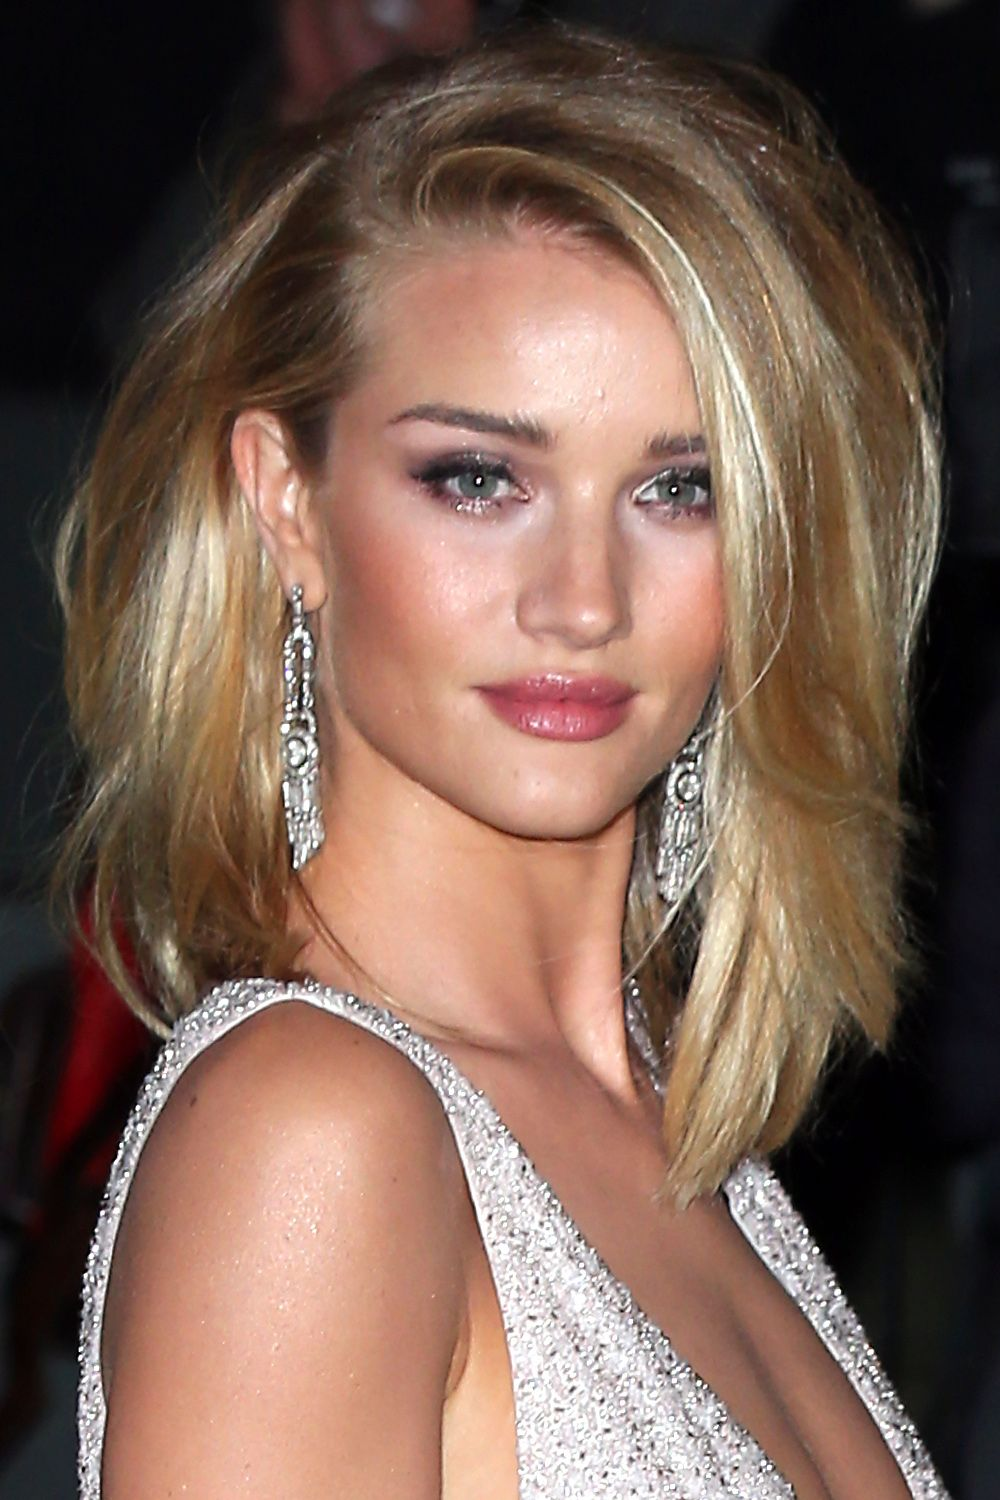 "<p>To recreate Rosie's <a href=""http://www.elle.com/beauty/a32634/rosie-huntington..."" target=""_blank"">tousled </a>look, blast roots with <a class=""body-el-link standard-body-el-link"" href=""http://www.elle.com/beauty/hair/news/a32298/jen-atkin-launches-the-zara-of-haircare/"" target=""_blank"">texturizing spray</a>, then flip your part to the far left or right. For Rosie's dimensional cheekbones, press her favorite blush (Laura Mercier Crème in Rosebud) into the apples of cheeks.<br></p>"